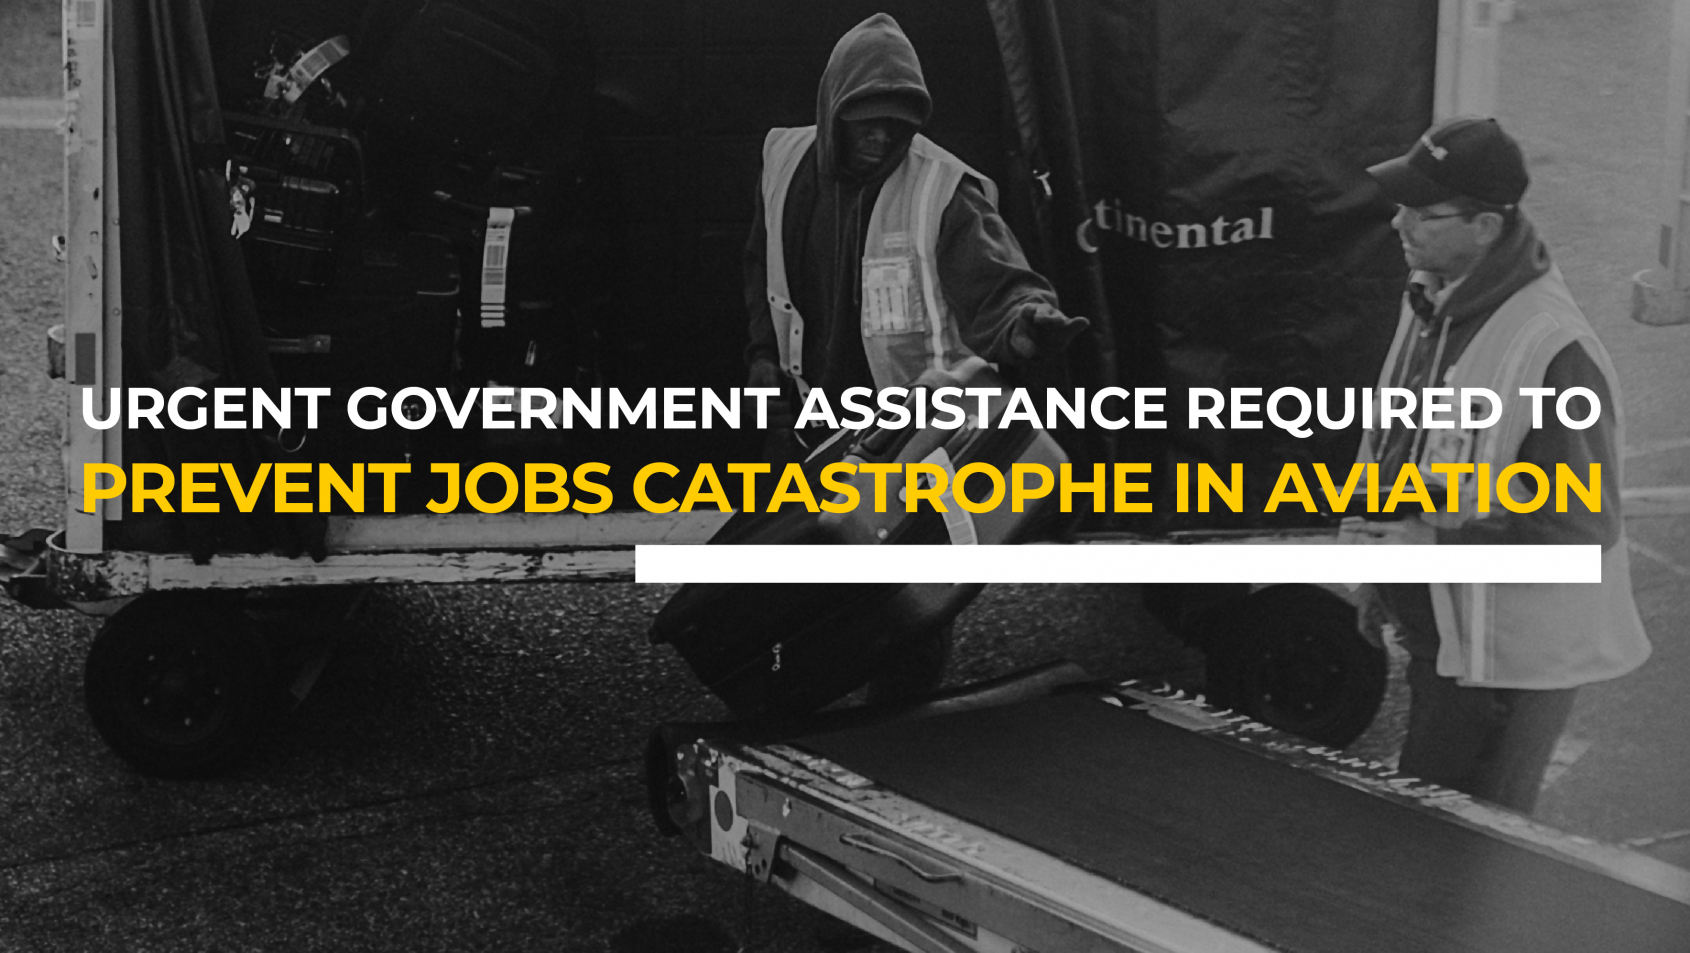 Airlines and air transport workers call for urgent government assistance to prevent jobs catastrophe